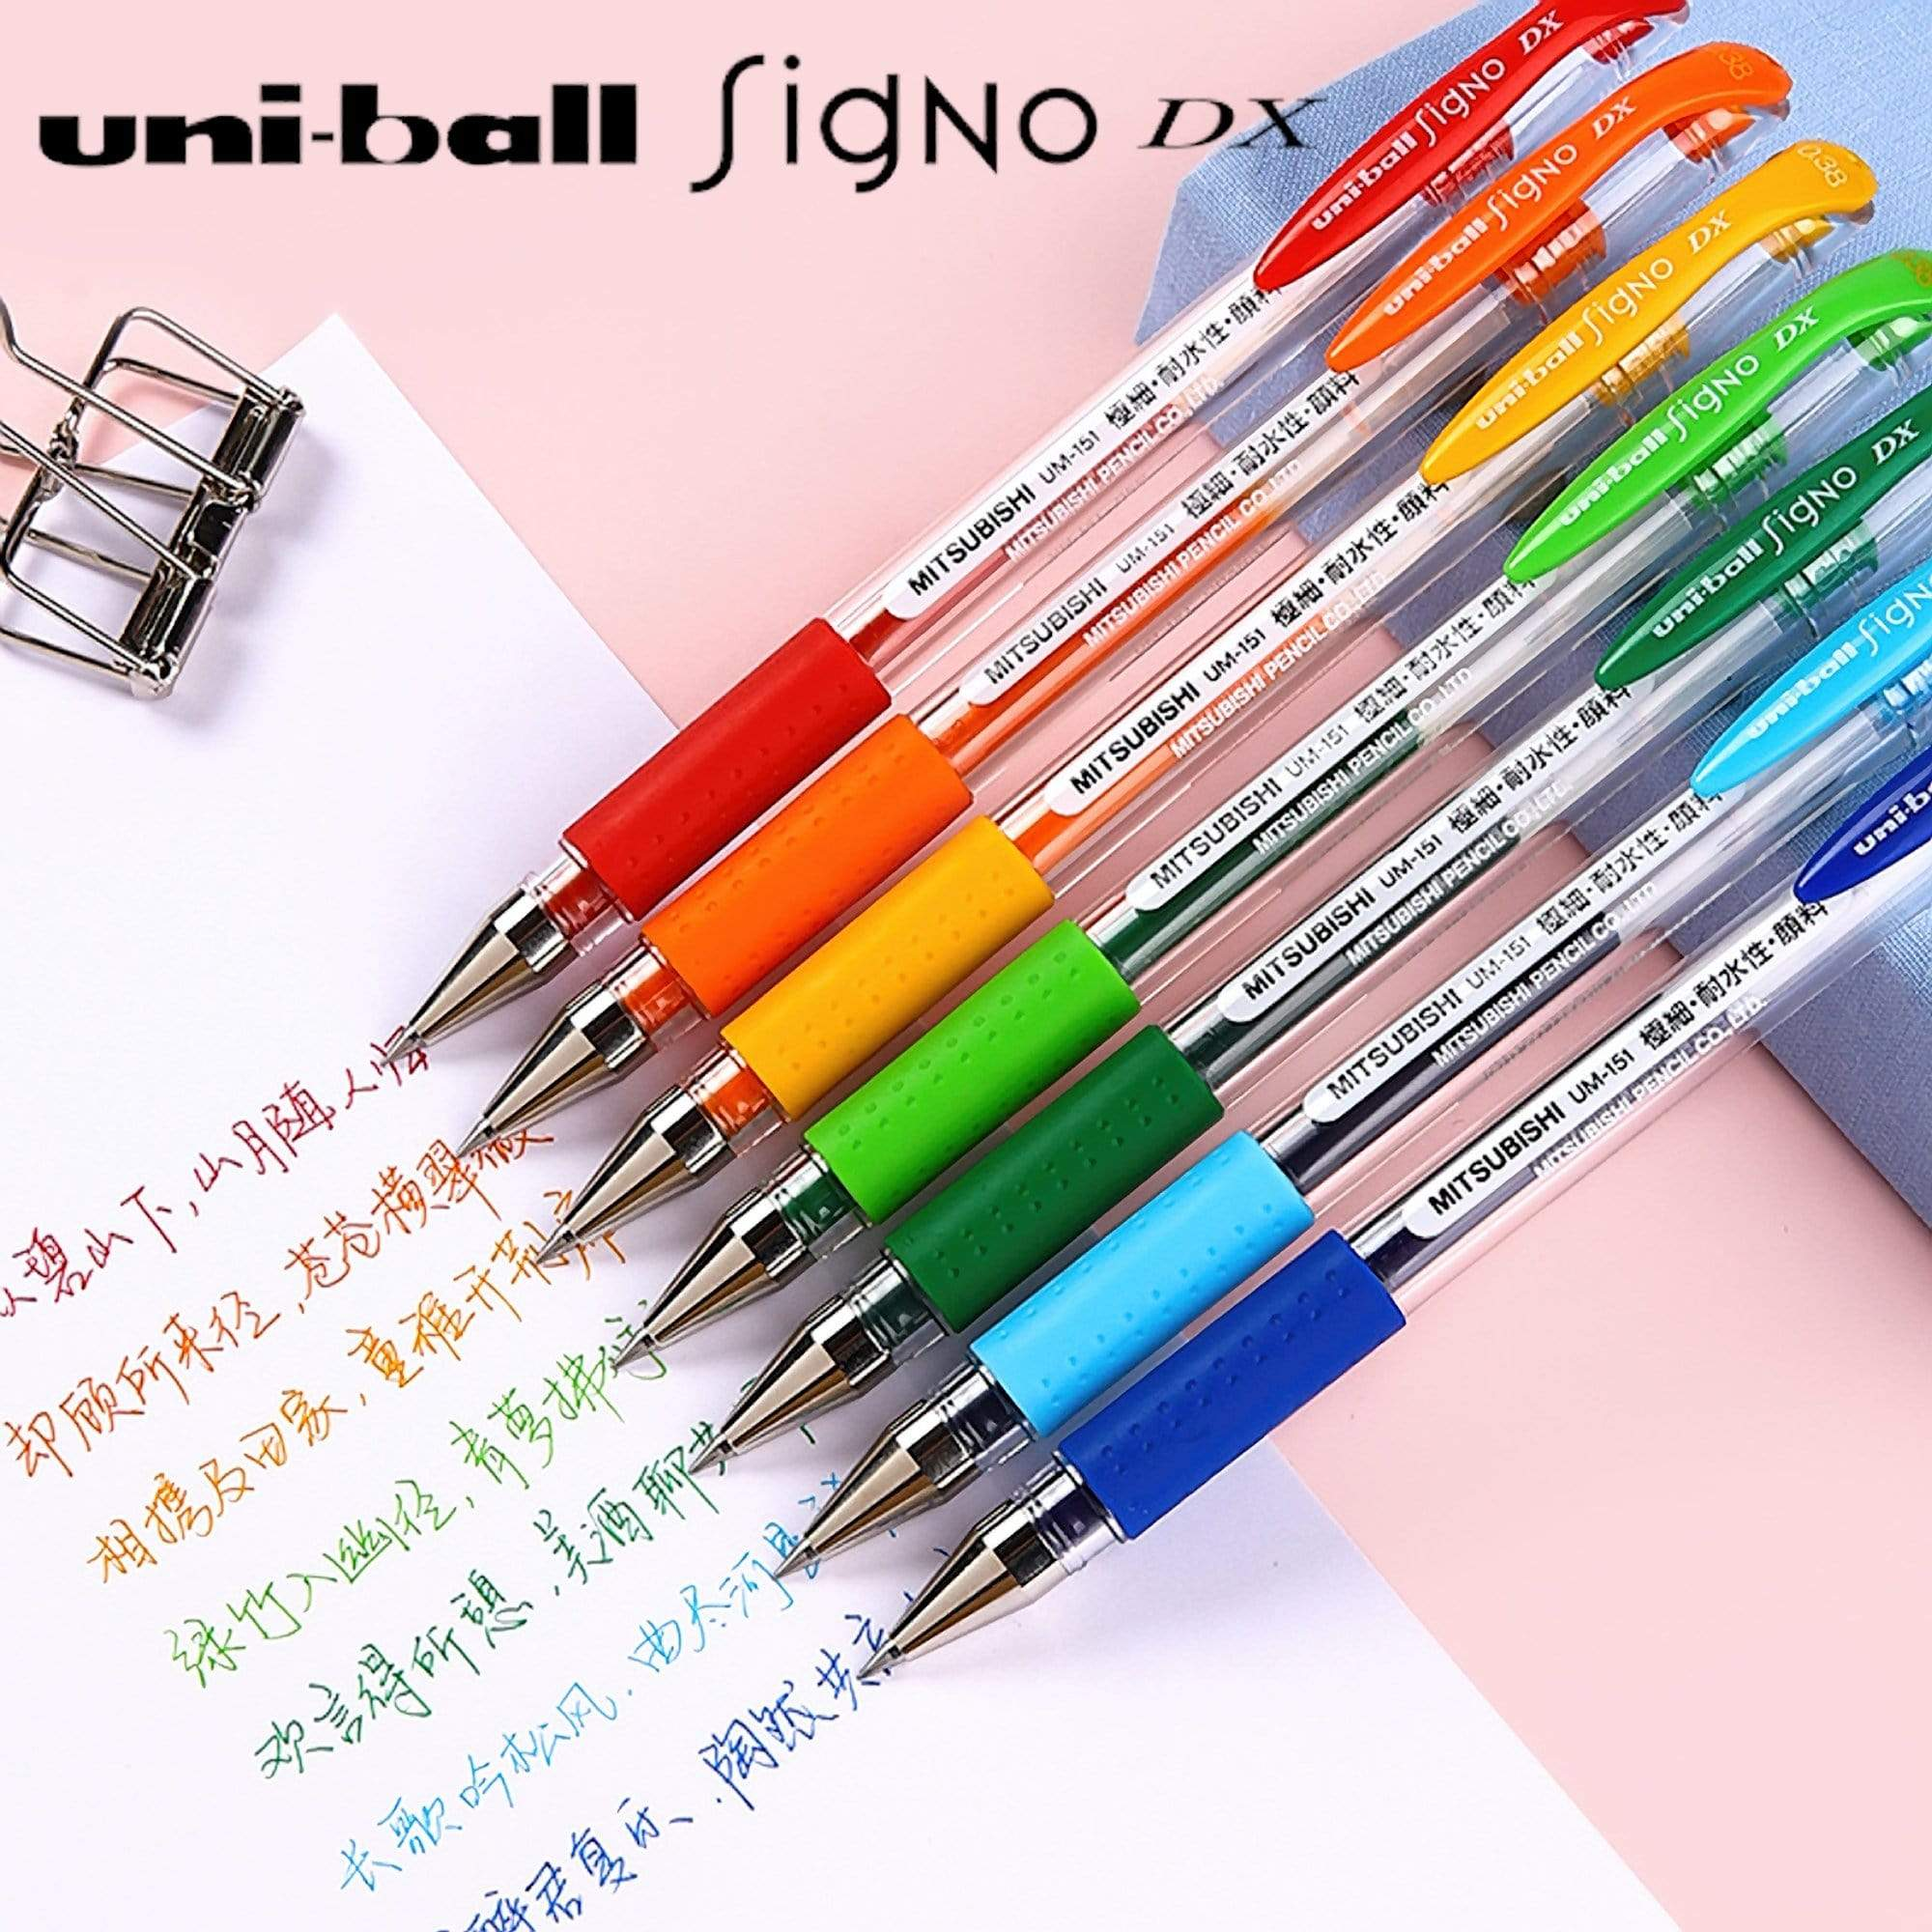 Uni-ball Signo UM-151 Gel Pen PURE PINK | 0.28 mm - The Stationery Life!